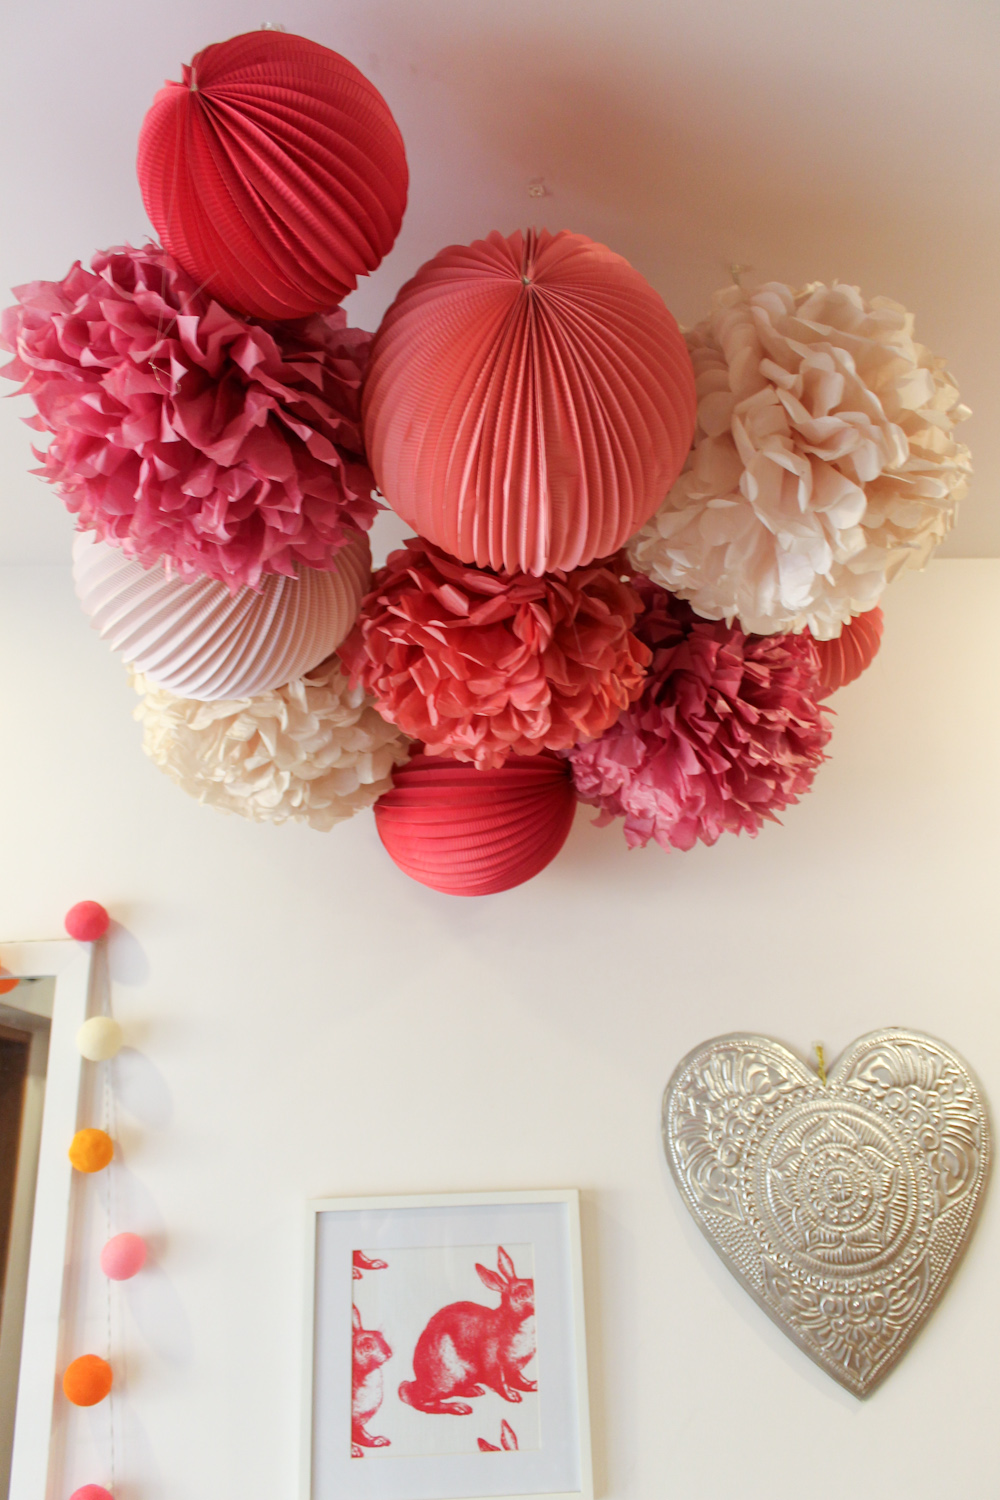 Kids Room with Pom-poms-17